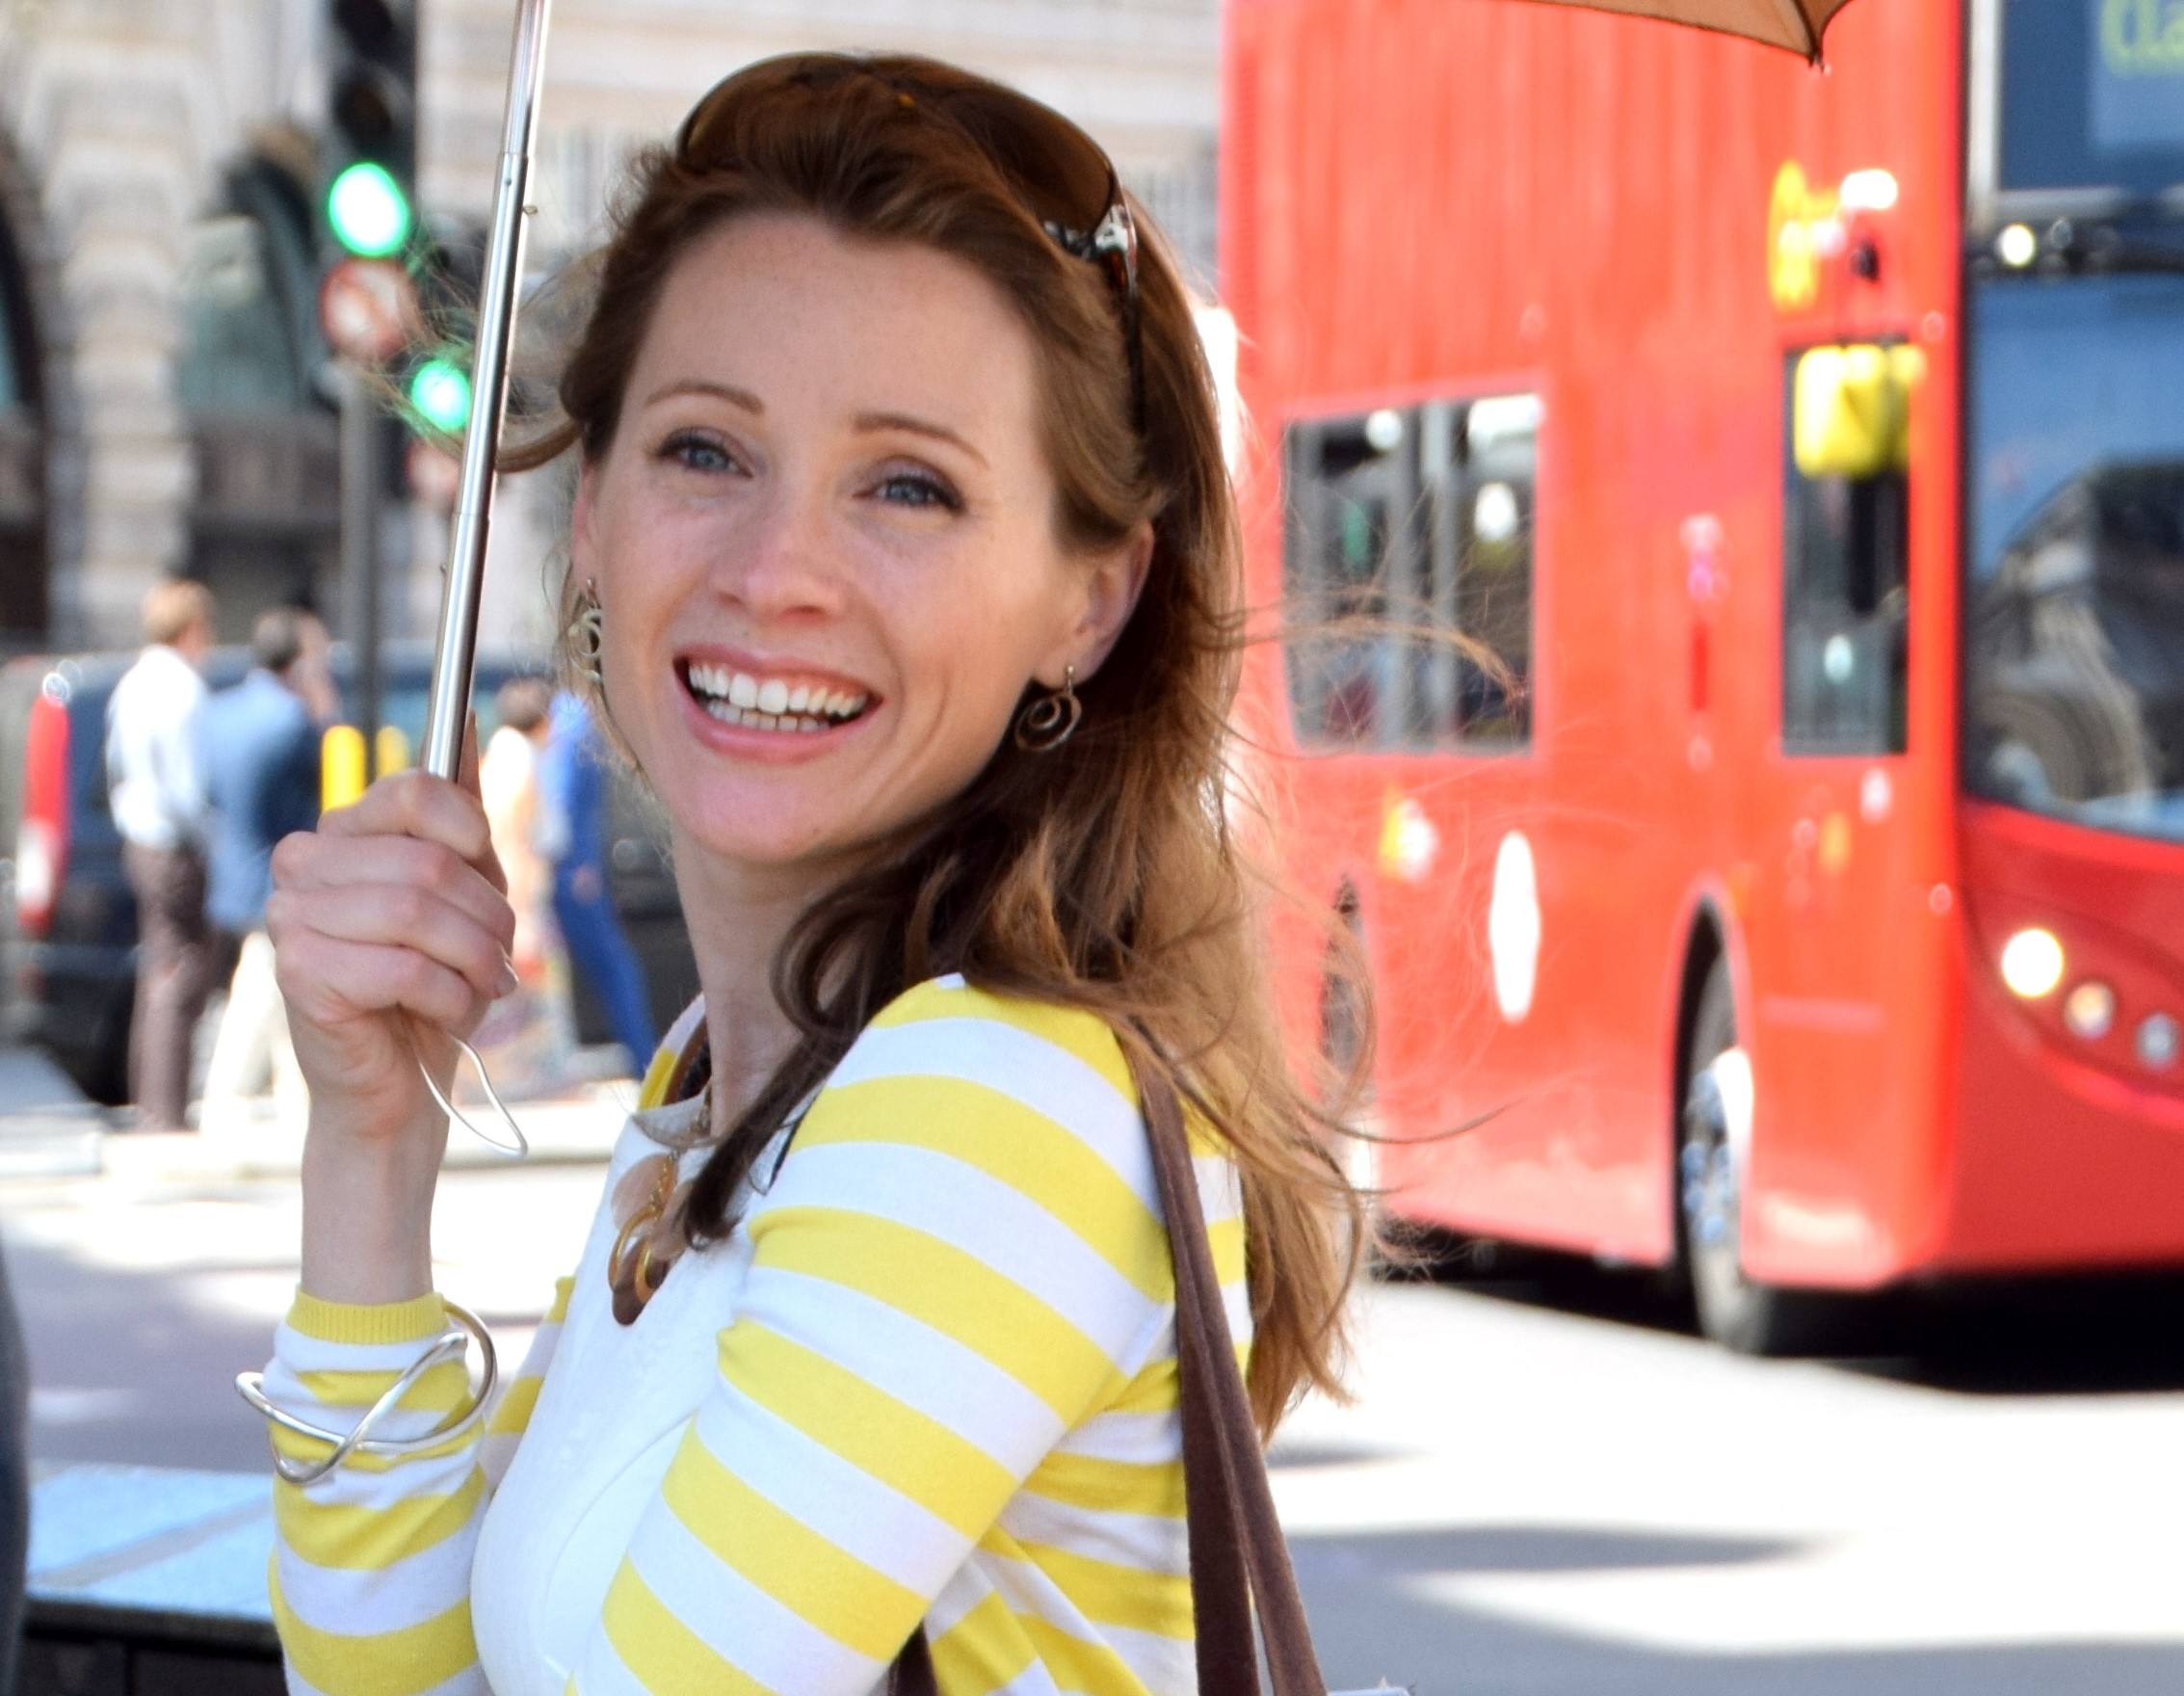 Jennifer Earle Food Consultant and London Tour Guide